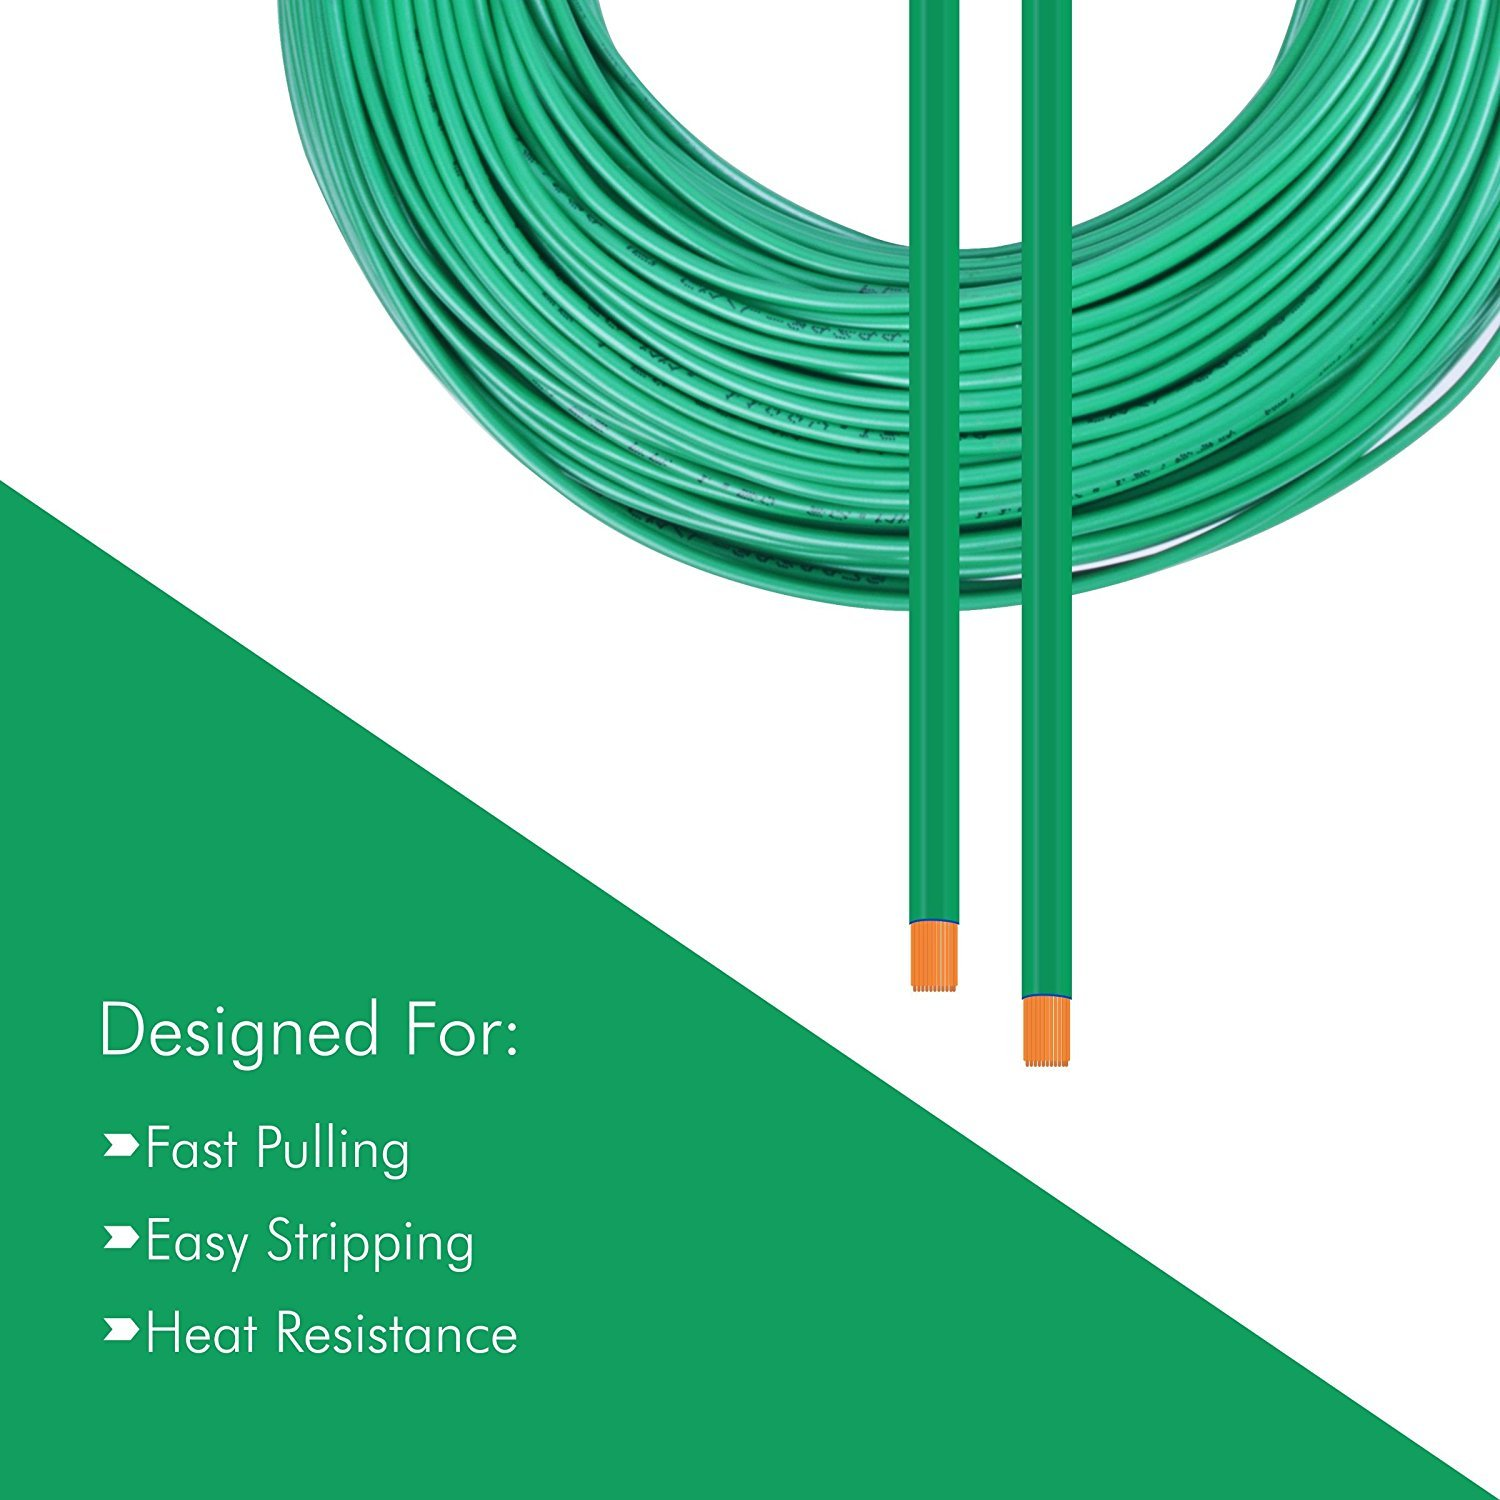 Plaza Pvc Insulated 25 Sq Mm Cable Green 90m Home Wiring Diagram Shows Arrows In Red Point To The Wires Question Improvement